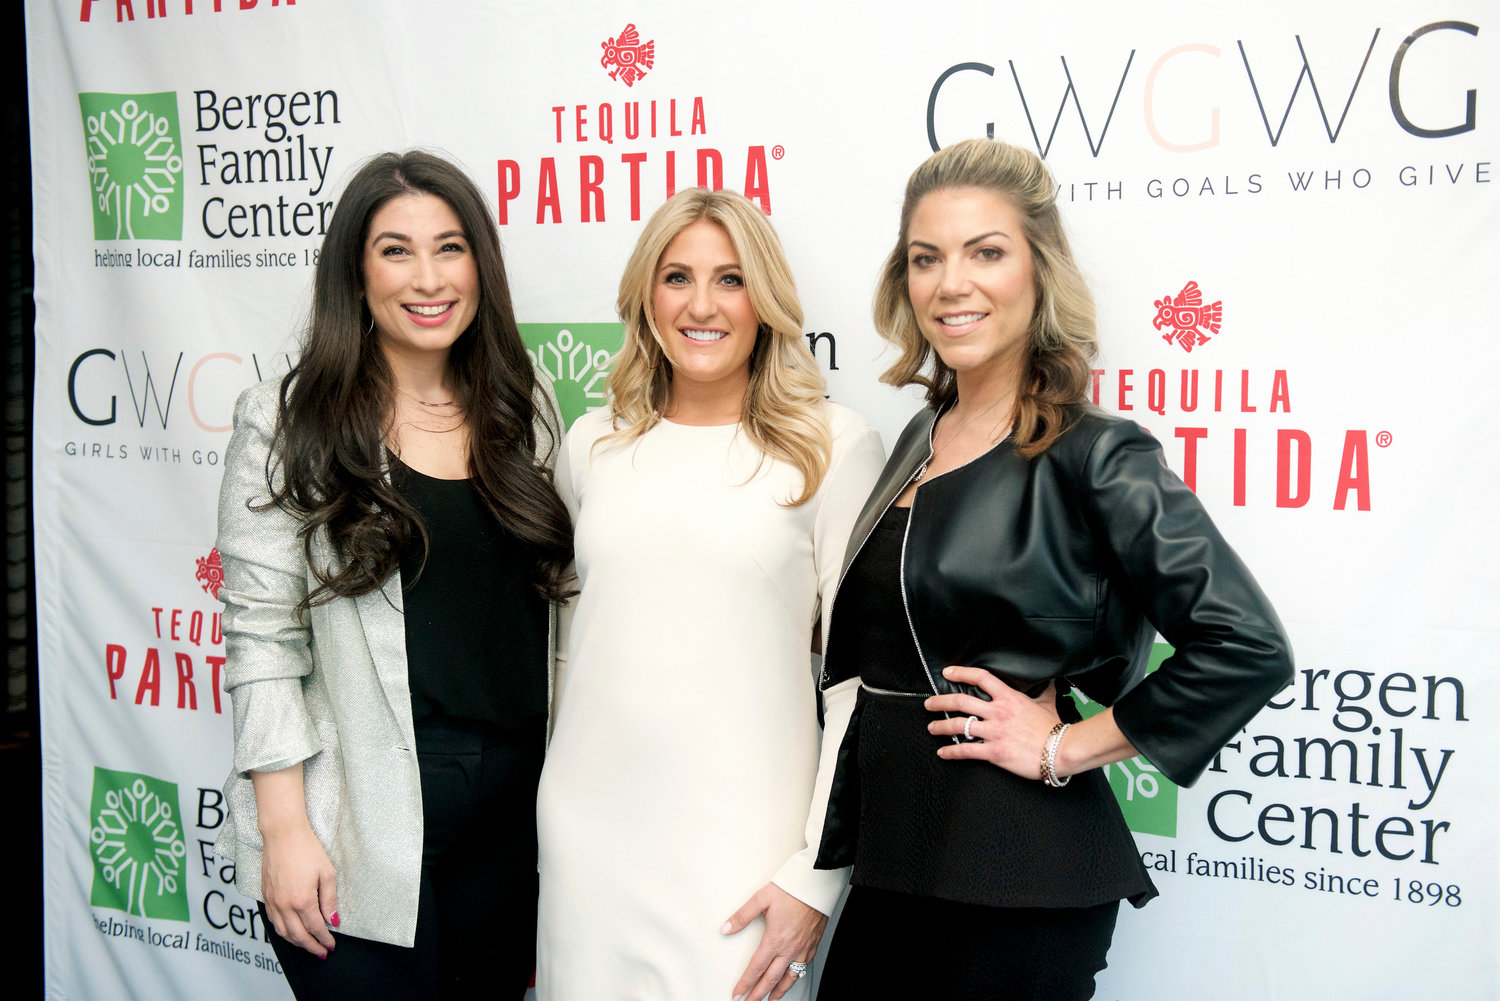 Girls With Goals Who Give aims to get women entrepreneurs networking and help local charities. From left were Hewlett High School alumna Stephanie Paradiso and co-founders Lisa Friesel and Lawrence High School graduate Amanda Hall.